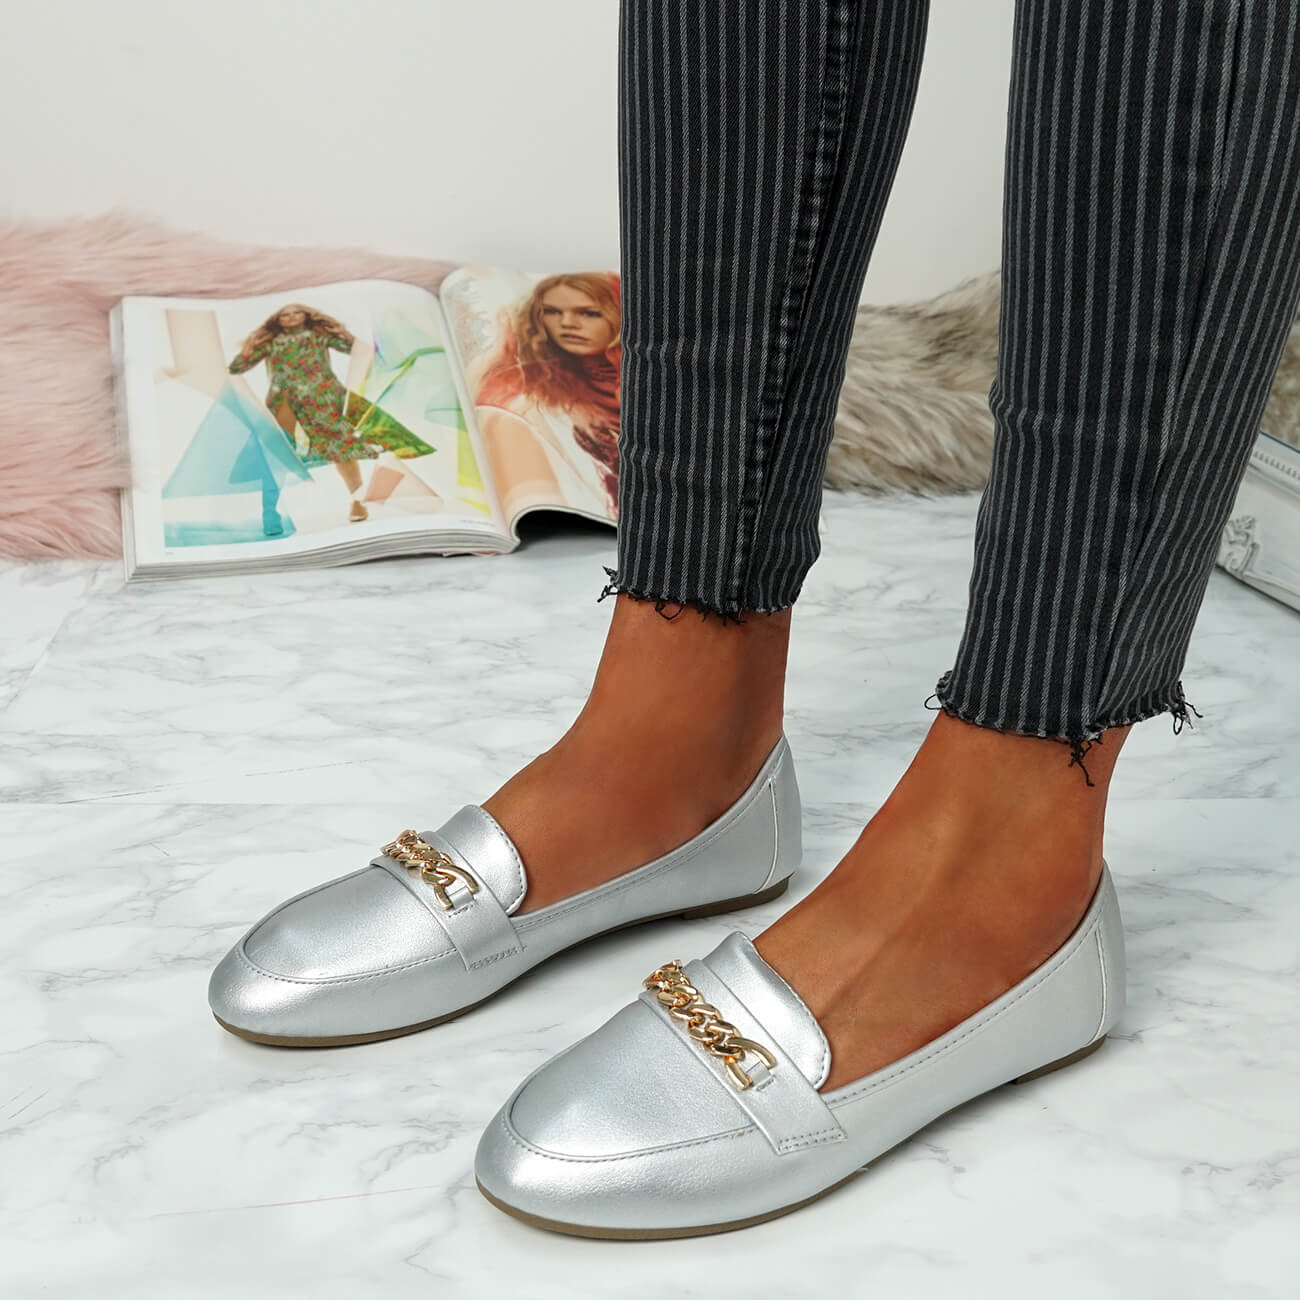 WOMENS-LADIES-CHAIN-SLIP-ON-BALLERINA-LOAFERS-BALLET-DOLLY-PUMPS-SHOES-SIZE thumbnail 38